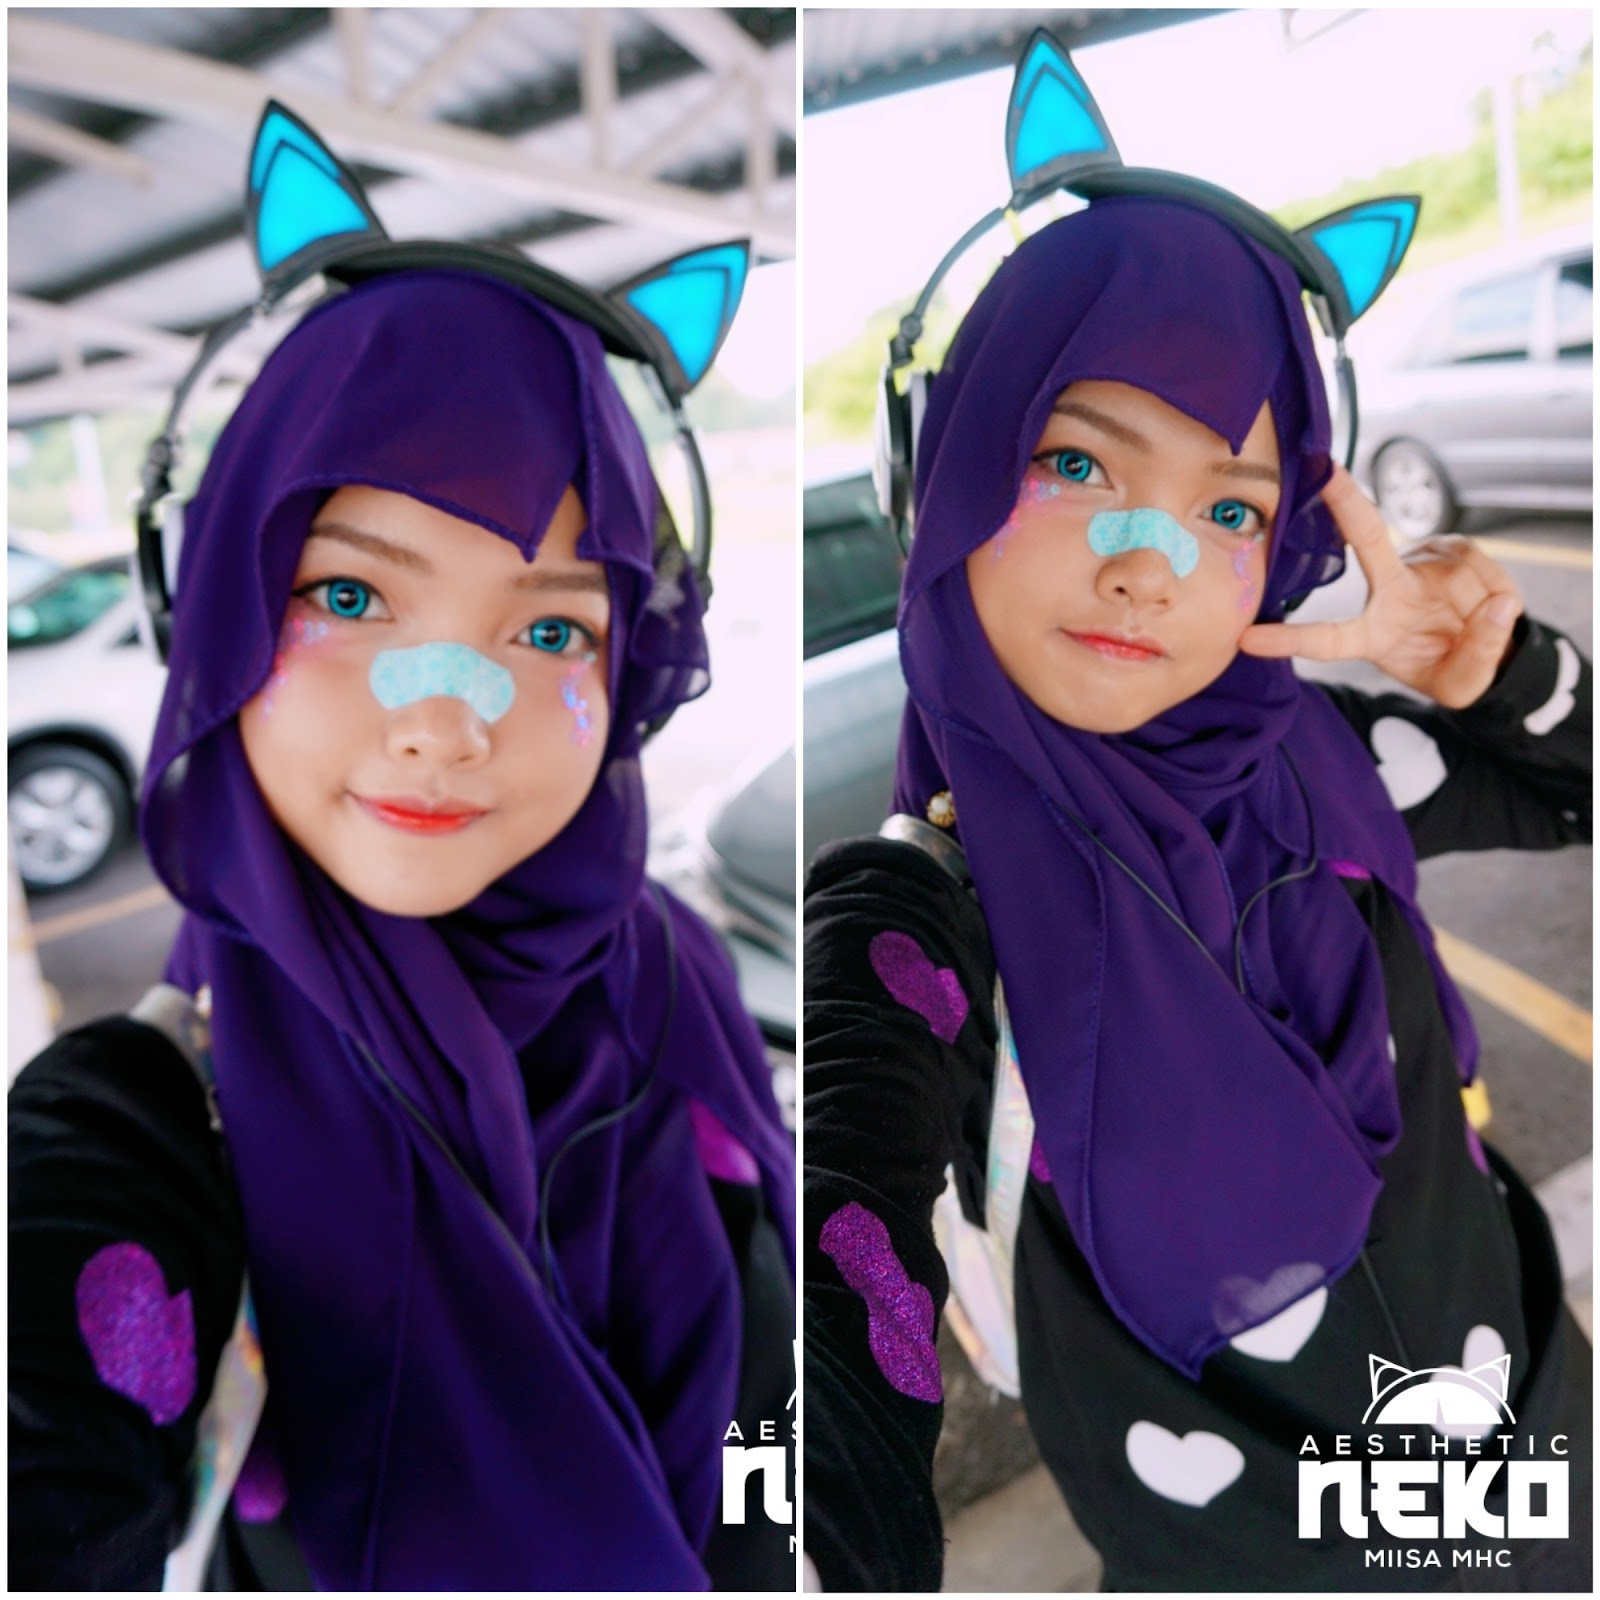 Miisa Hijab Cosplayer Yami Kawaii Inspired Fashion Look